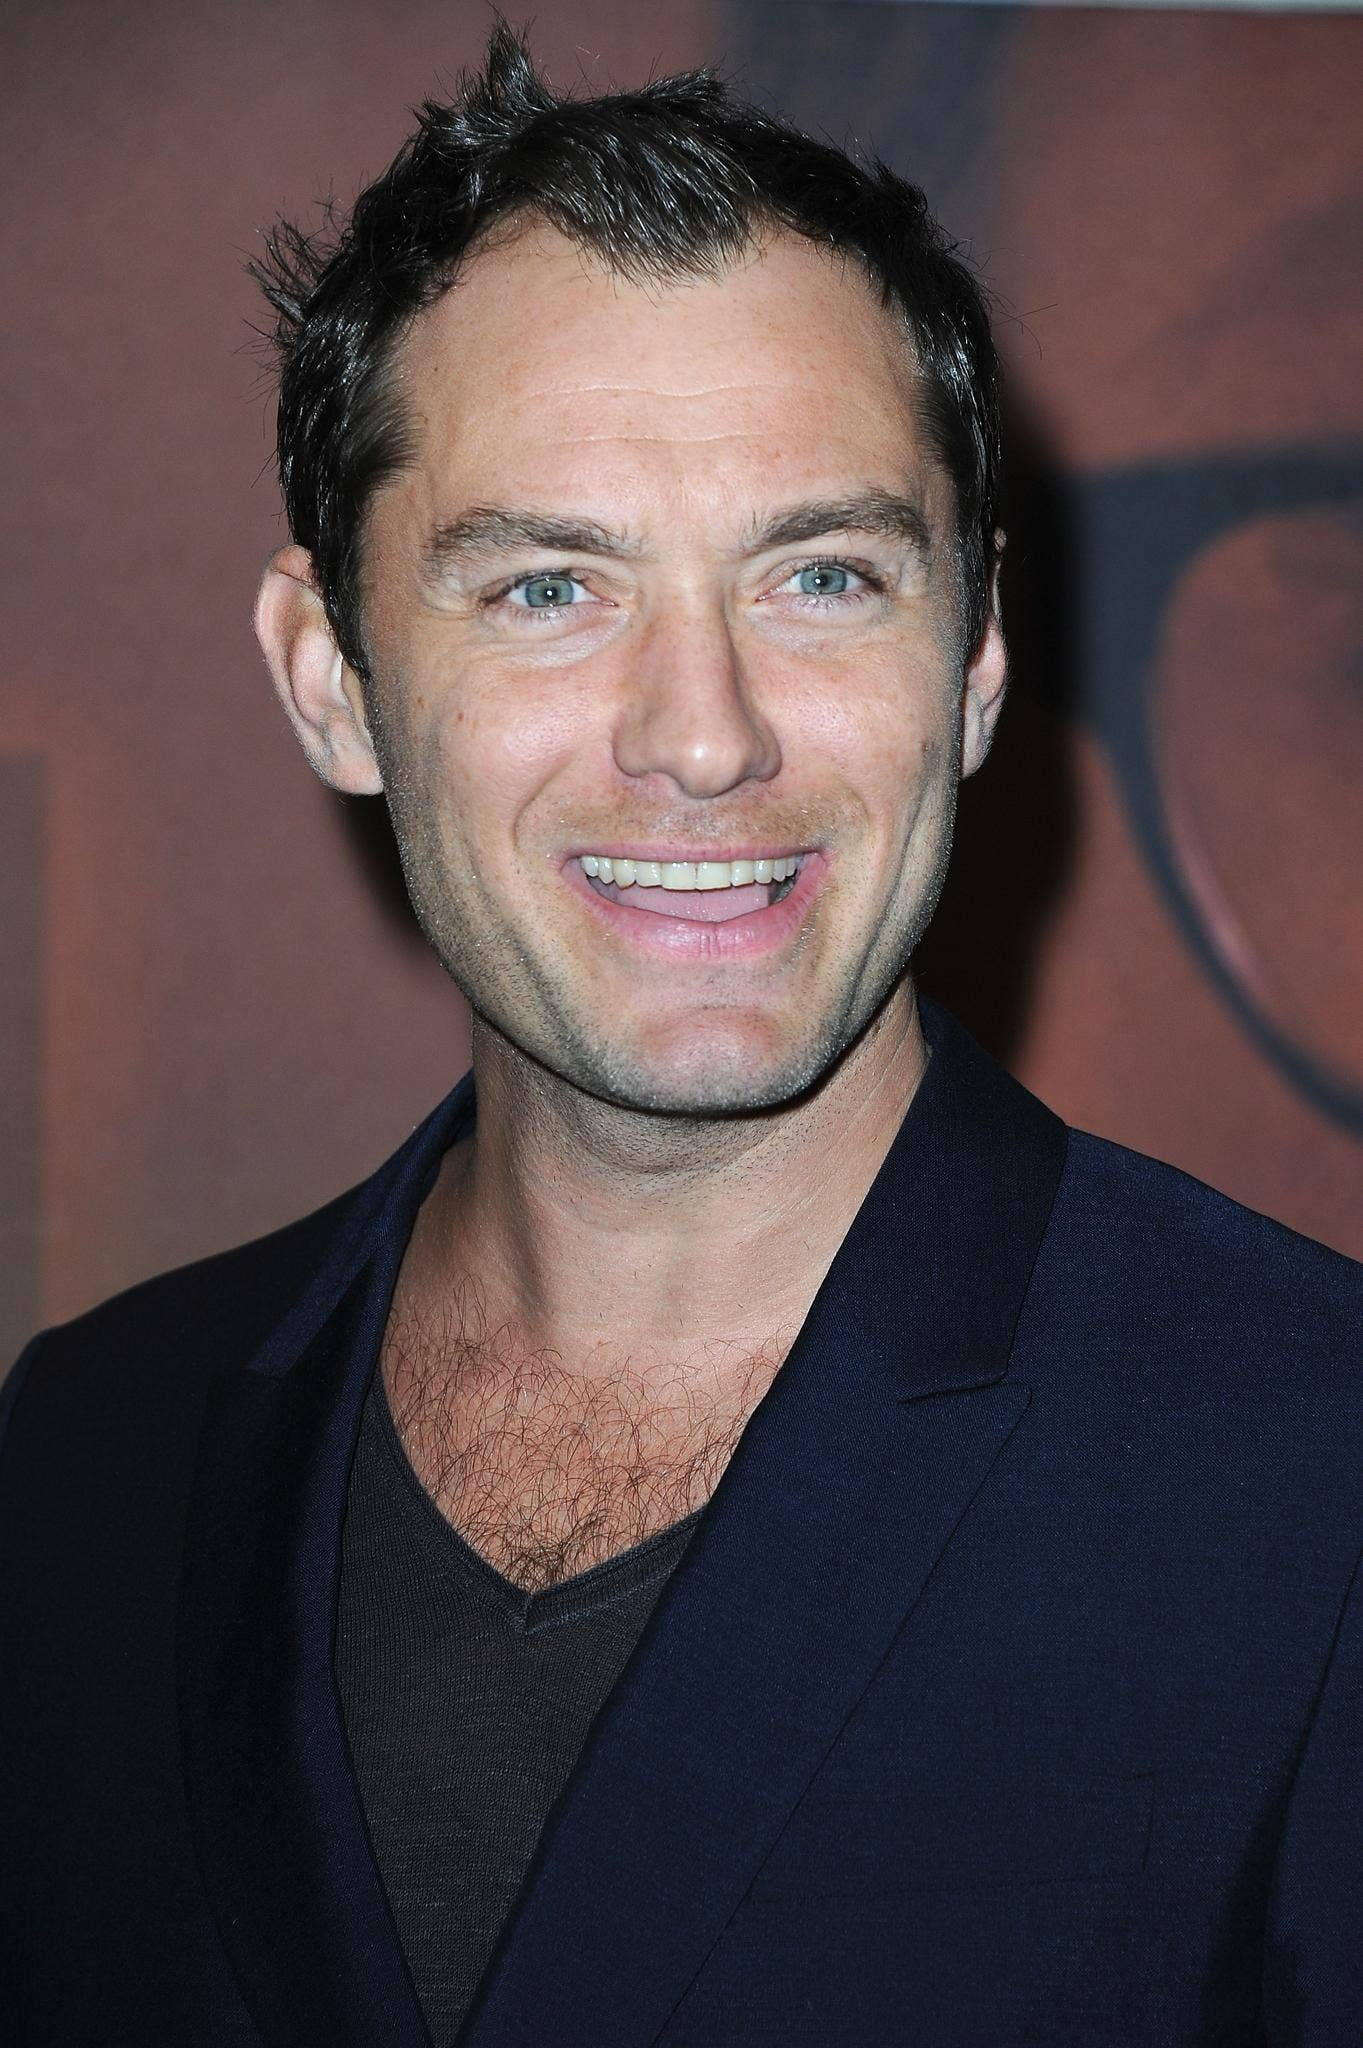 Jude Law has reportedly quit filming of Jane Got a Gun after the director failed to turn up